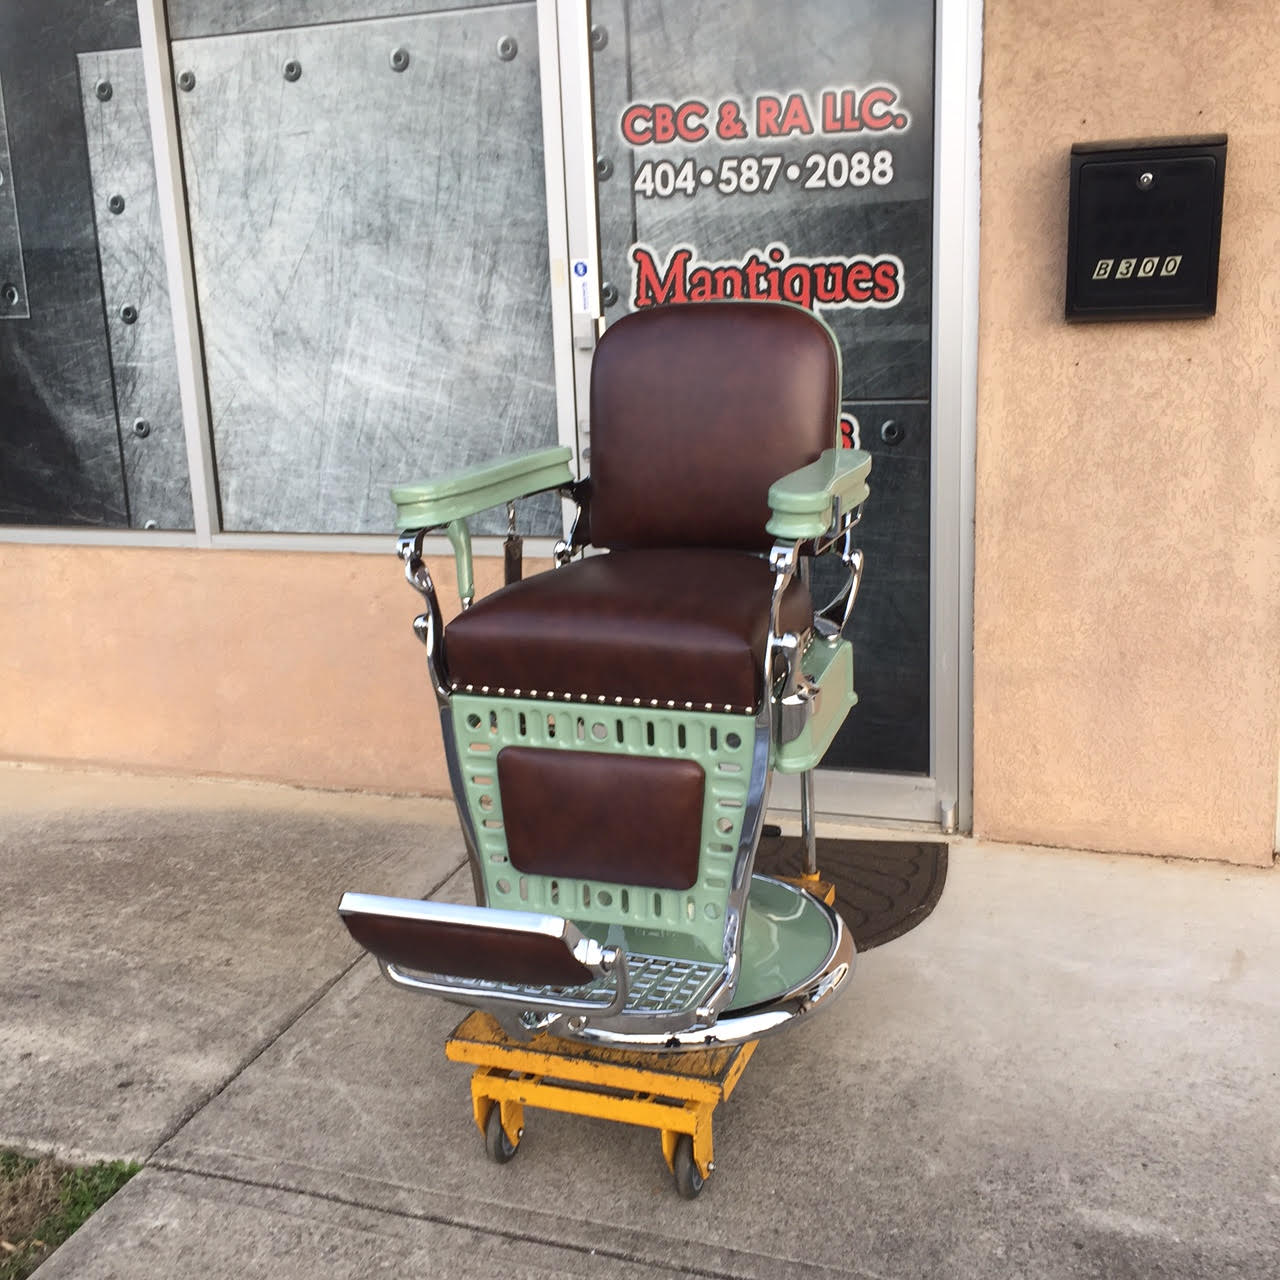 Antique Barber Chair For Sale Emil J Paidar 4 Custom Barber Chairs And Restorations